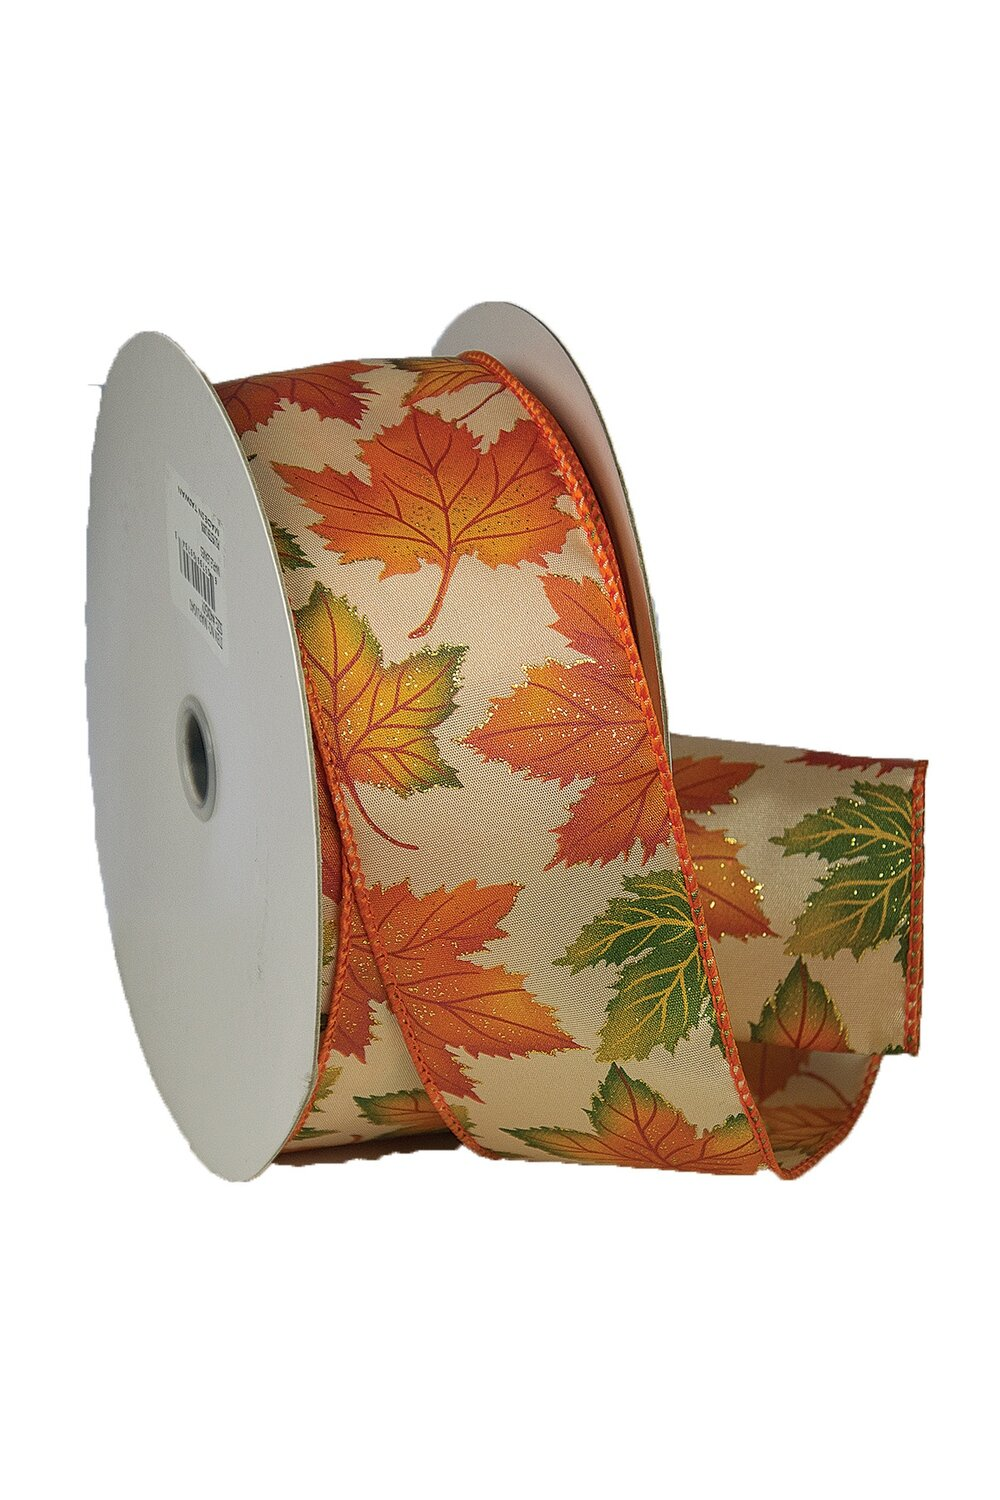 MAPLF40 - #40 wired sparkle maple leaf ribbon